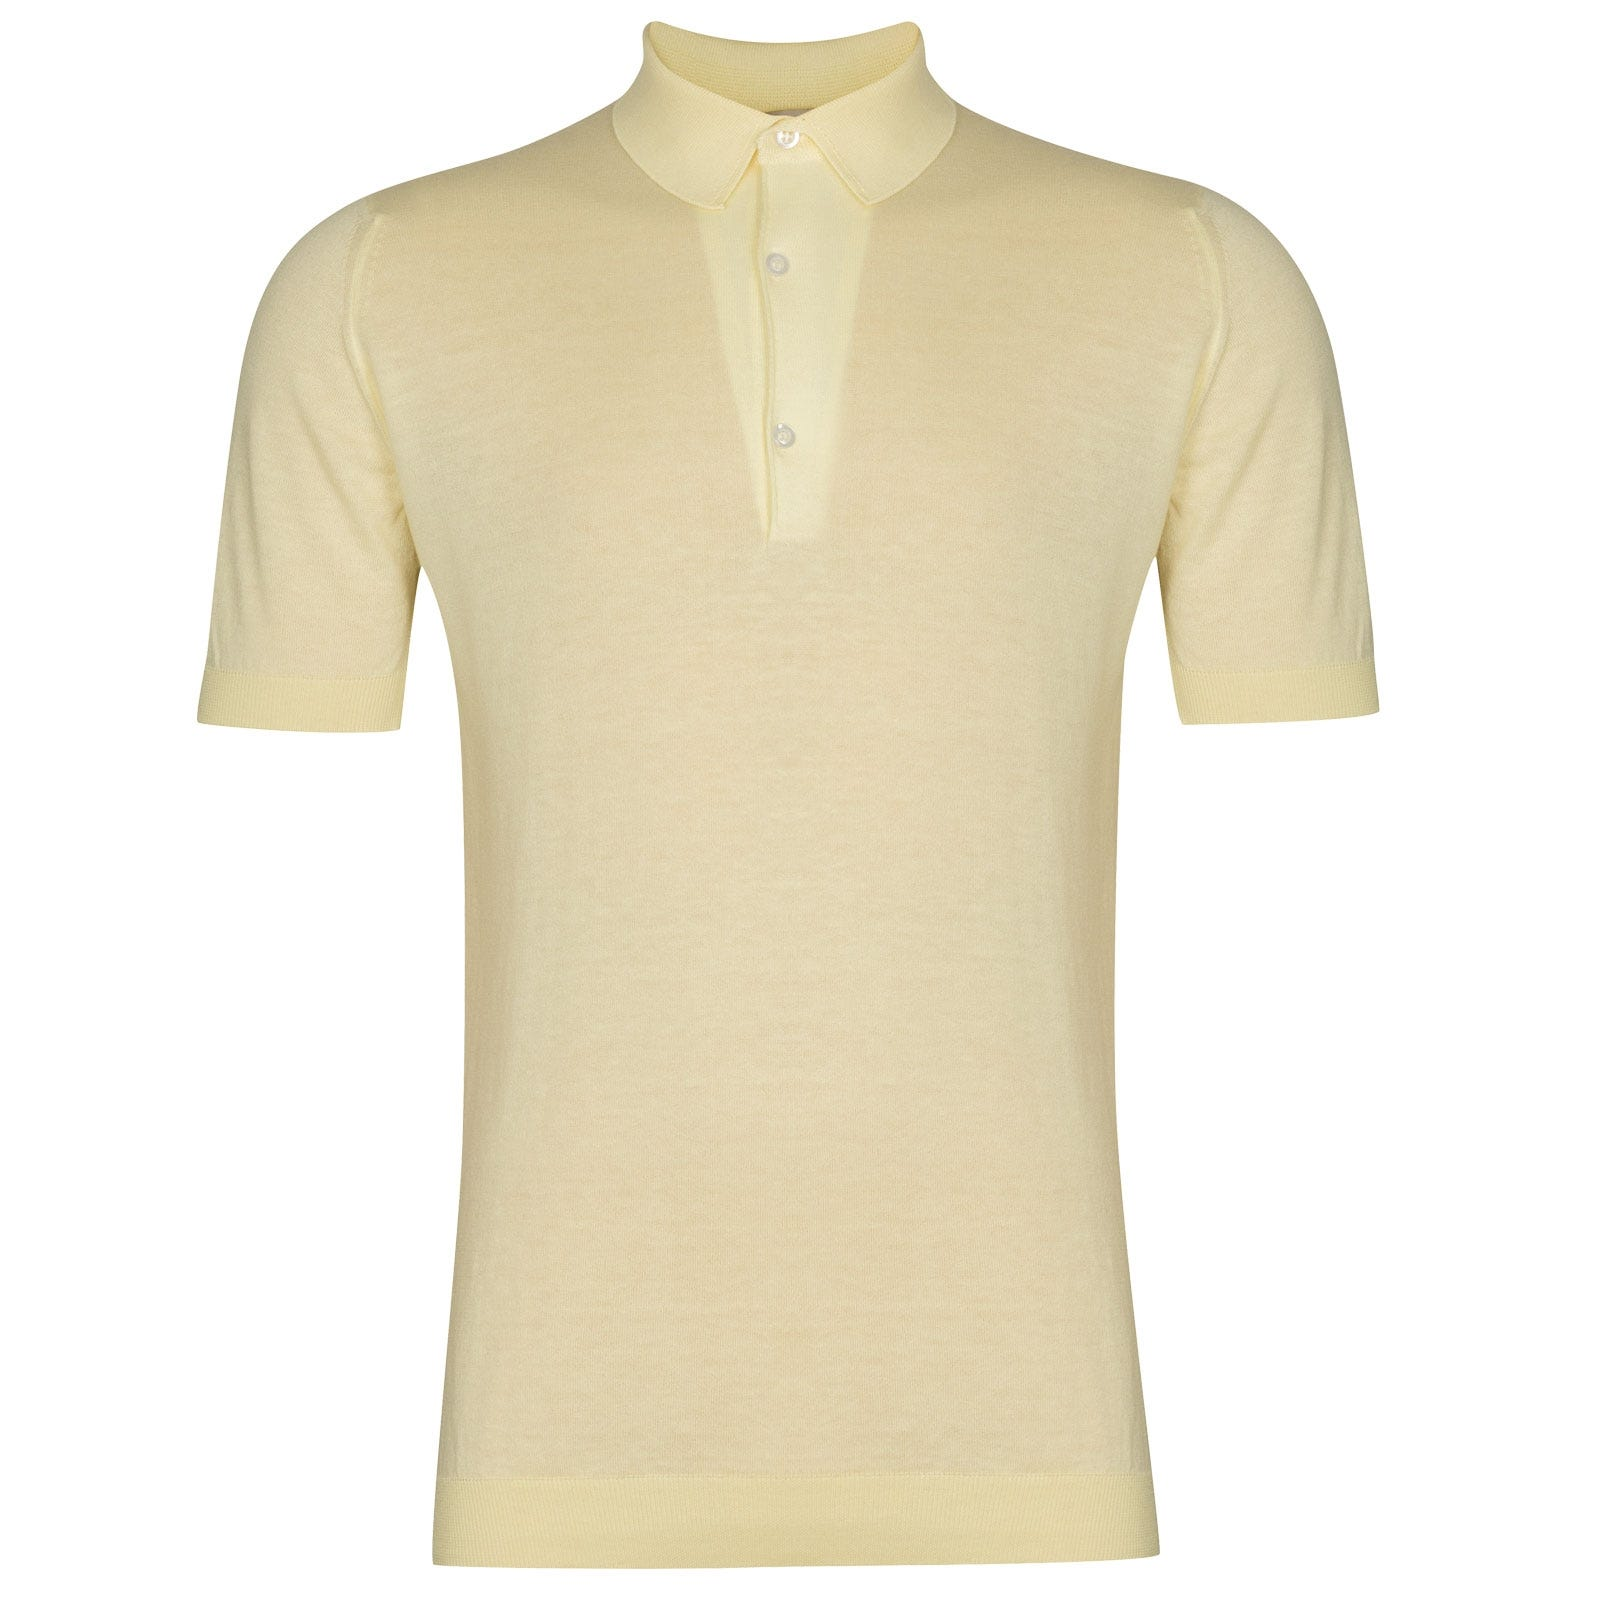 John Smedley Haddon in Lemon White Shirt-SML